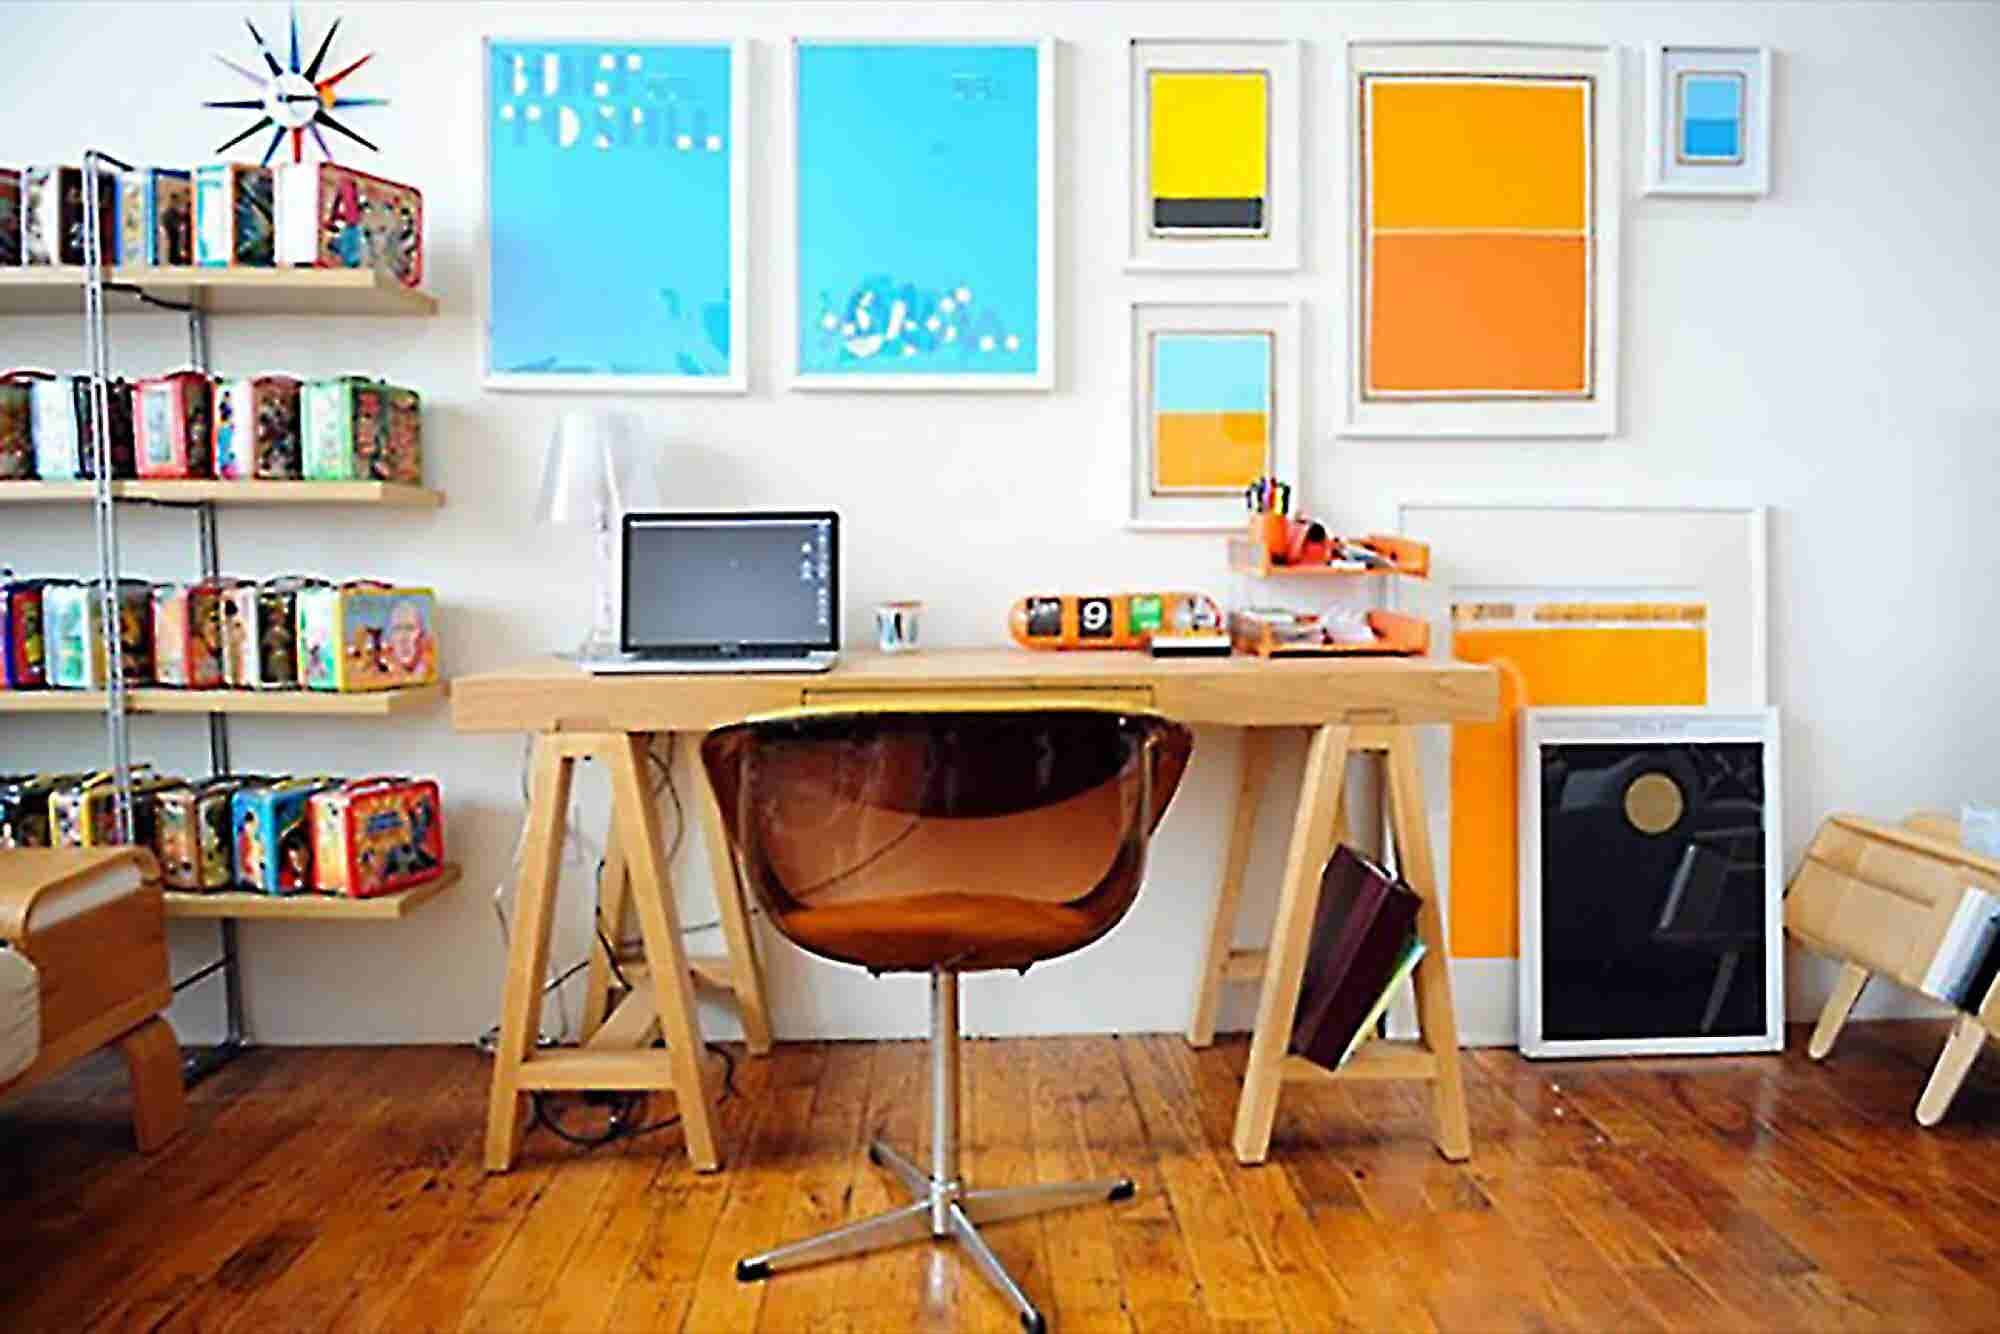 We Asked, You Answered: 10 Workspaces That Get Your Creative Juices Flowing